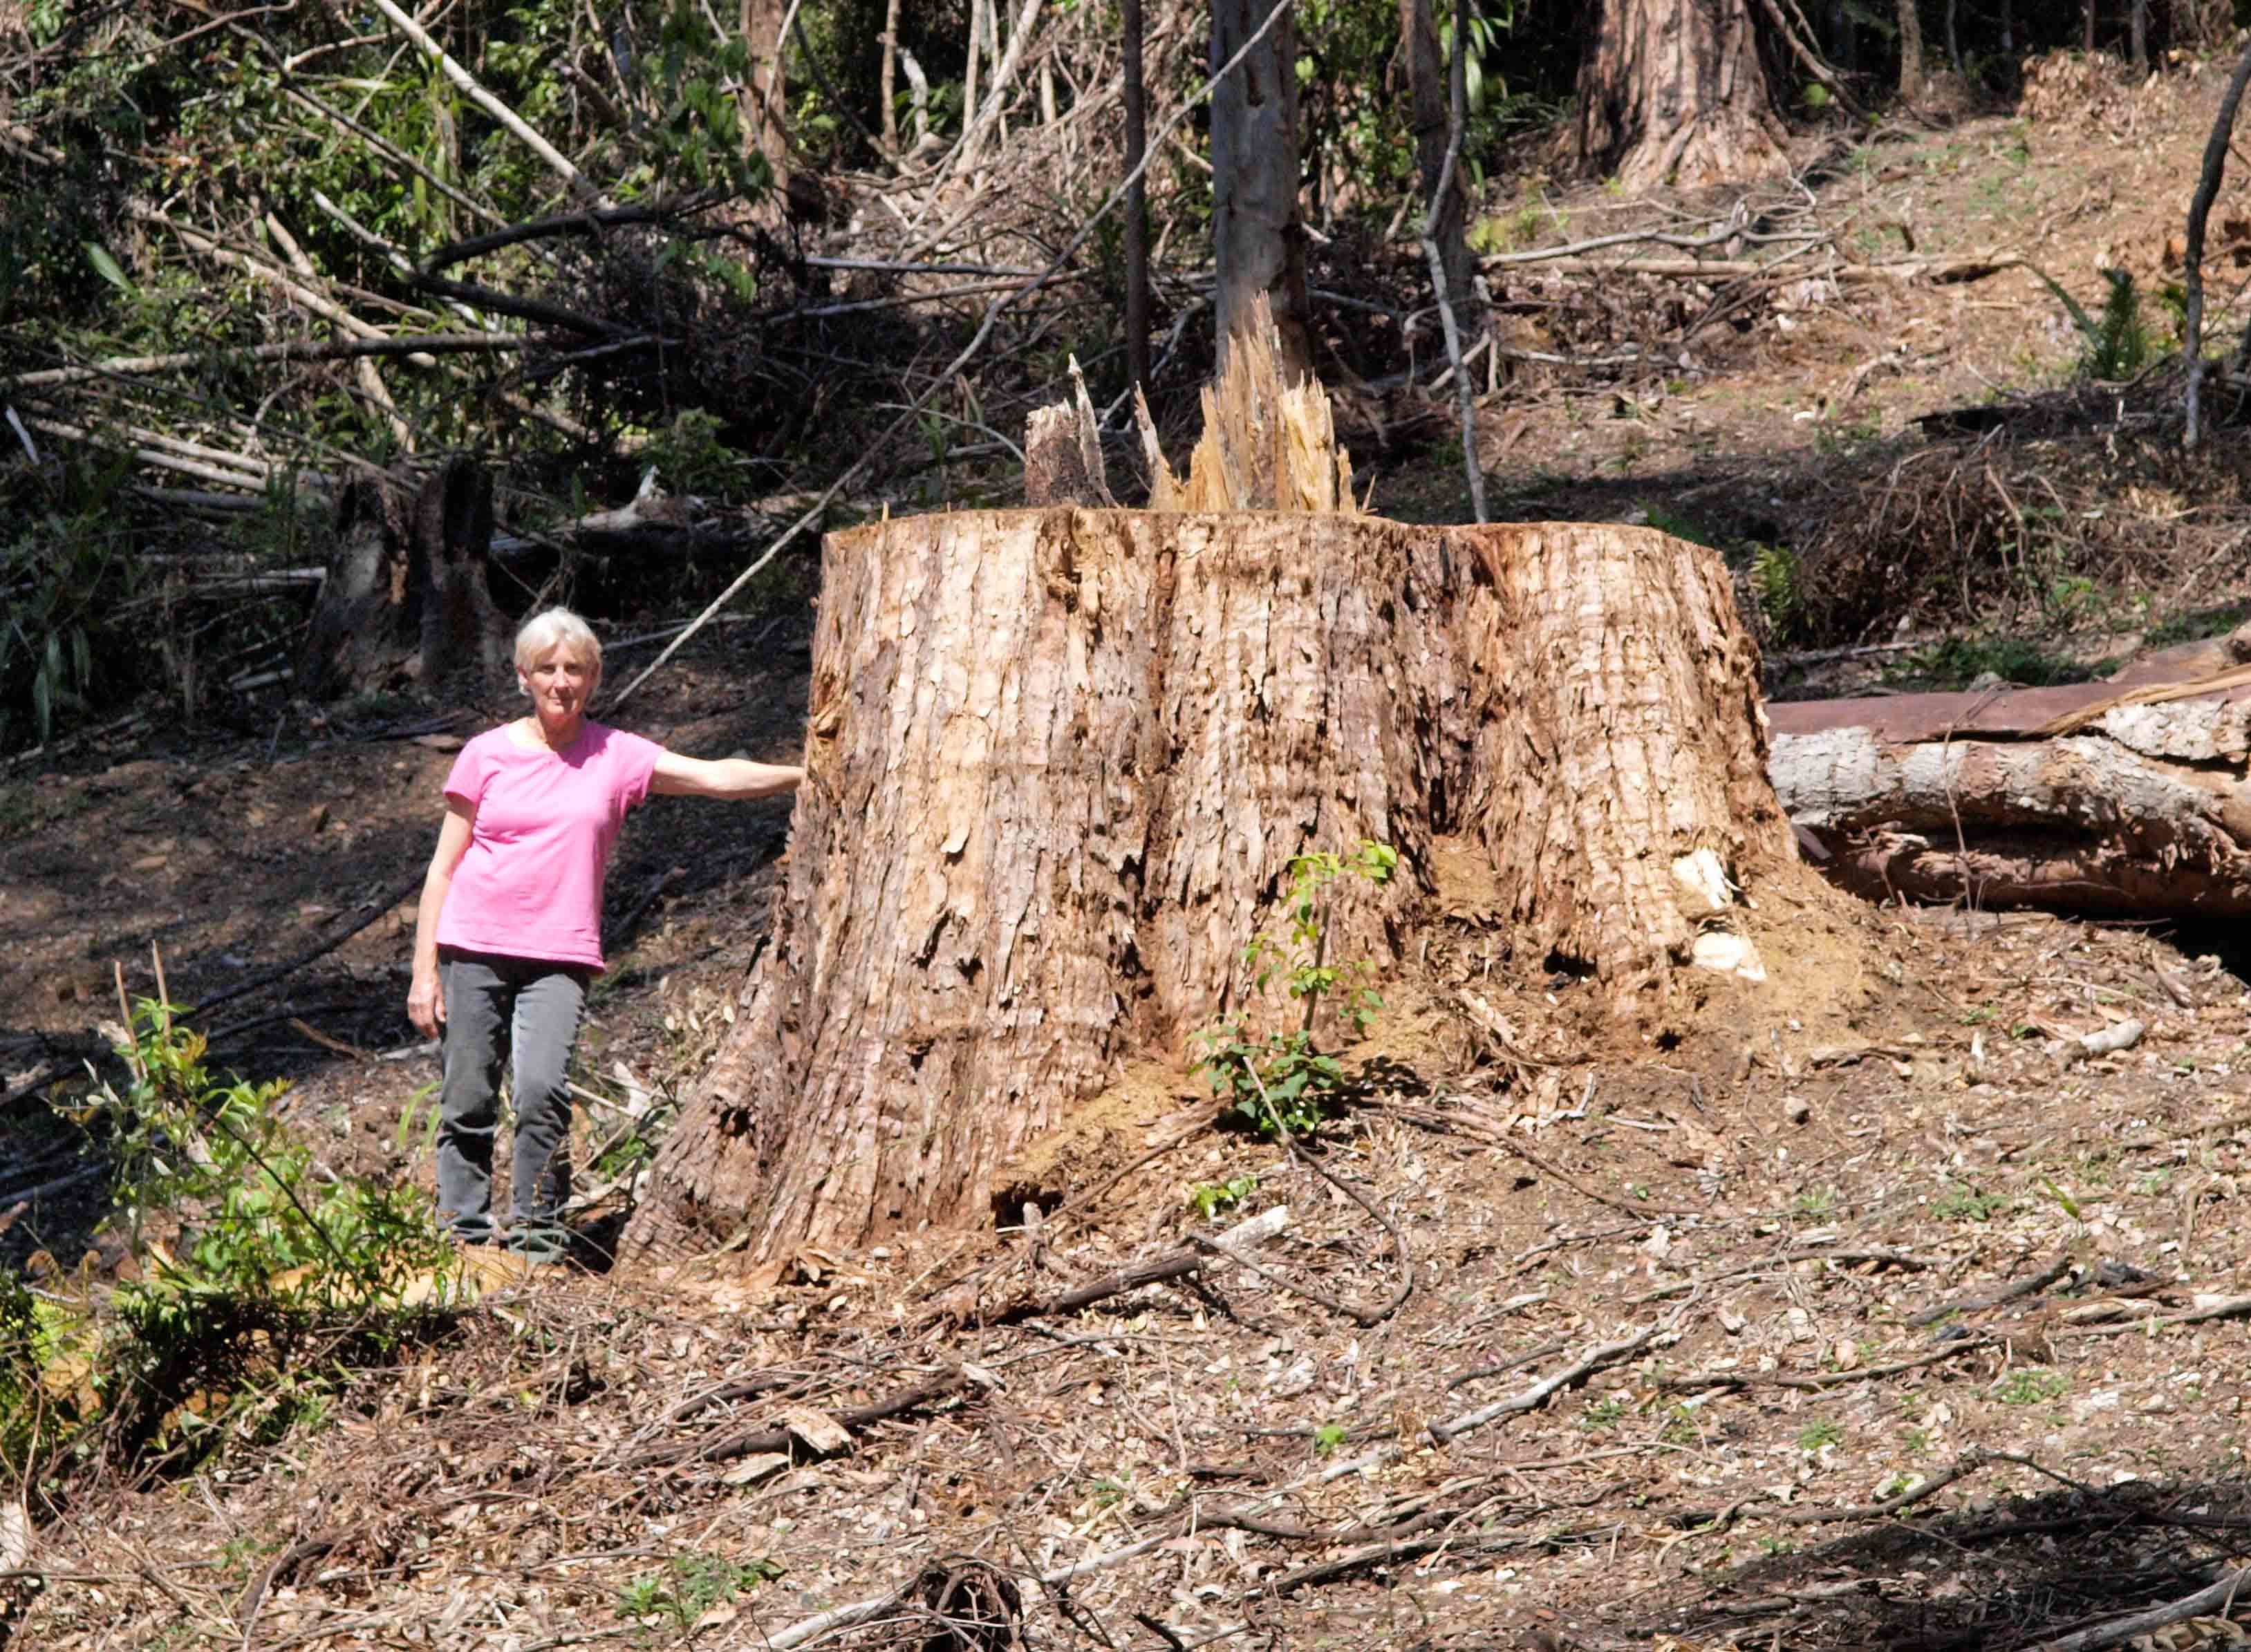 Greens call for urgent suspension of logging operations in prime koala habitat in Buckra Bendinni State Forest - Dawn Walker MP